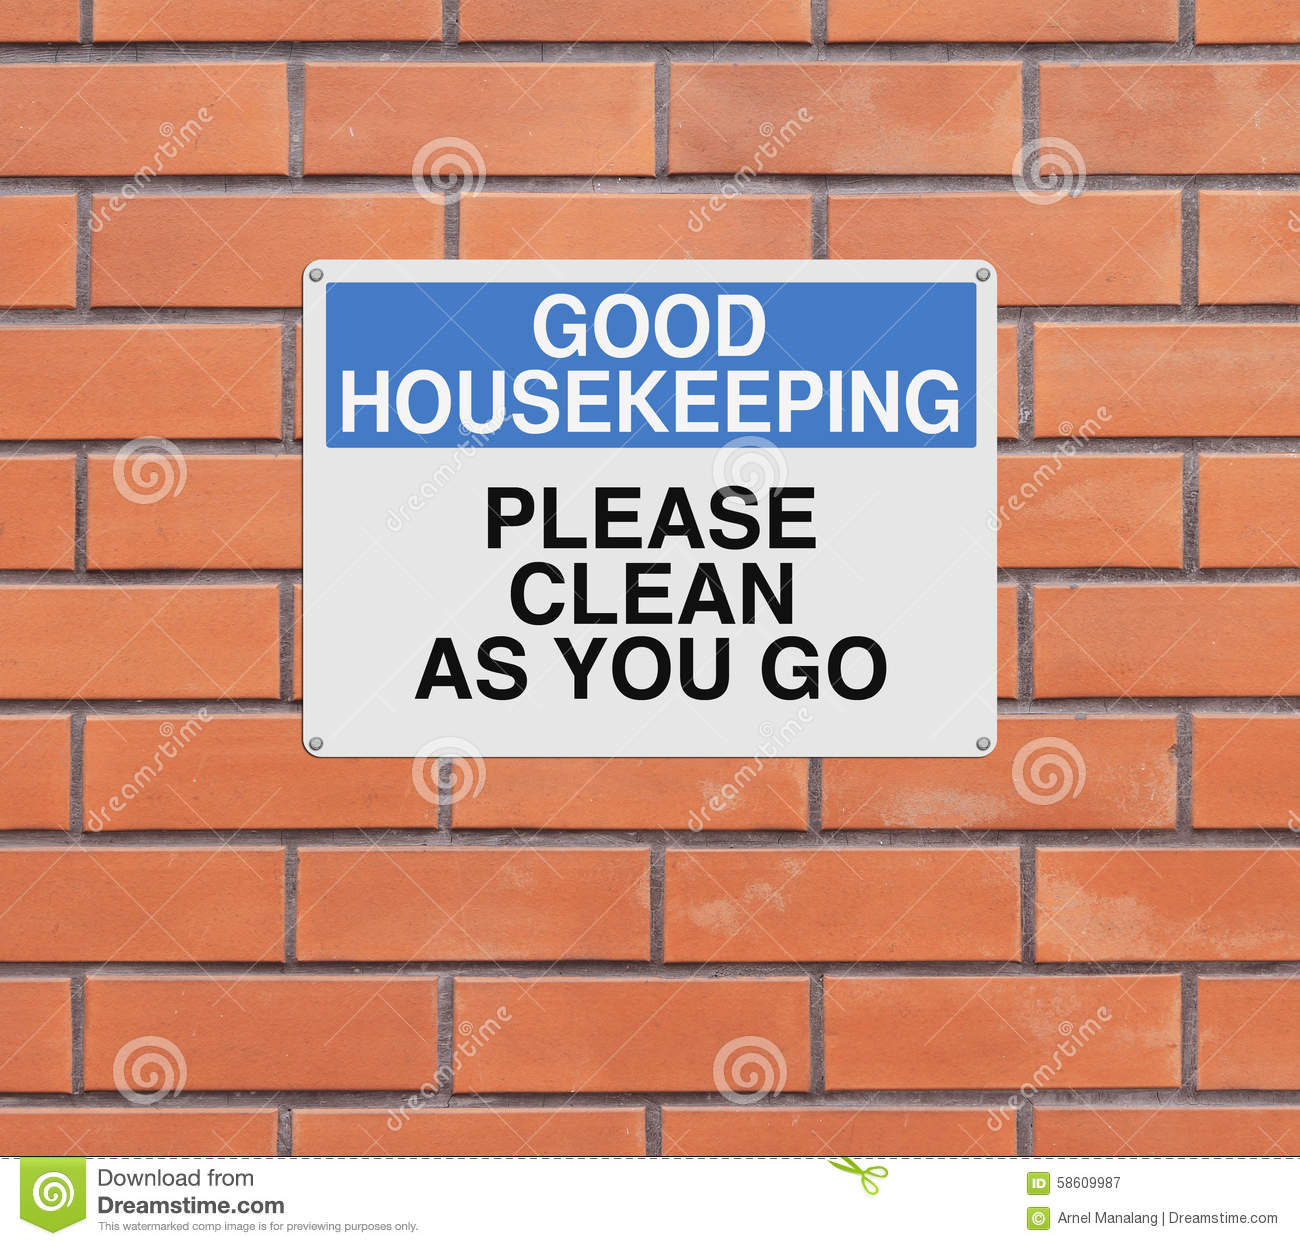 Clean As You Go Stock Photo - Image: 58609987